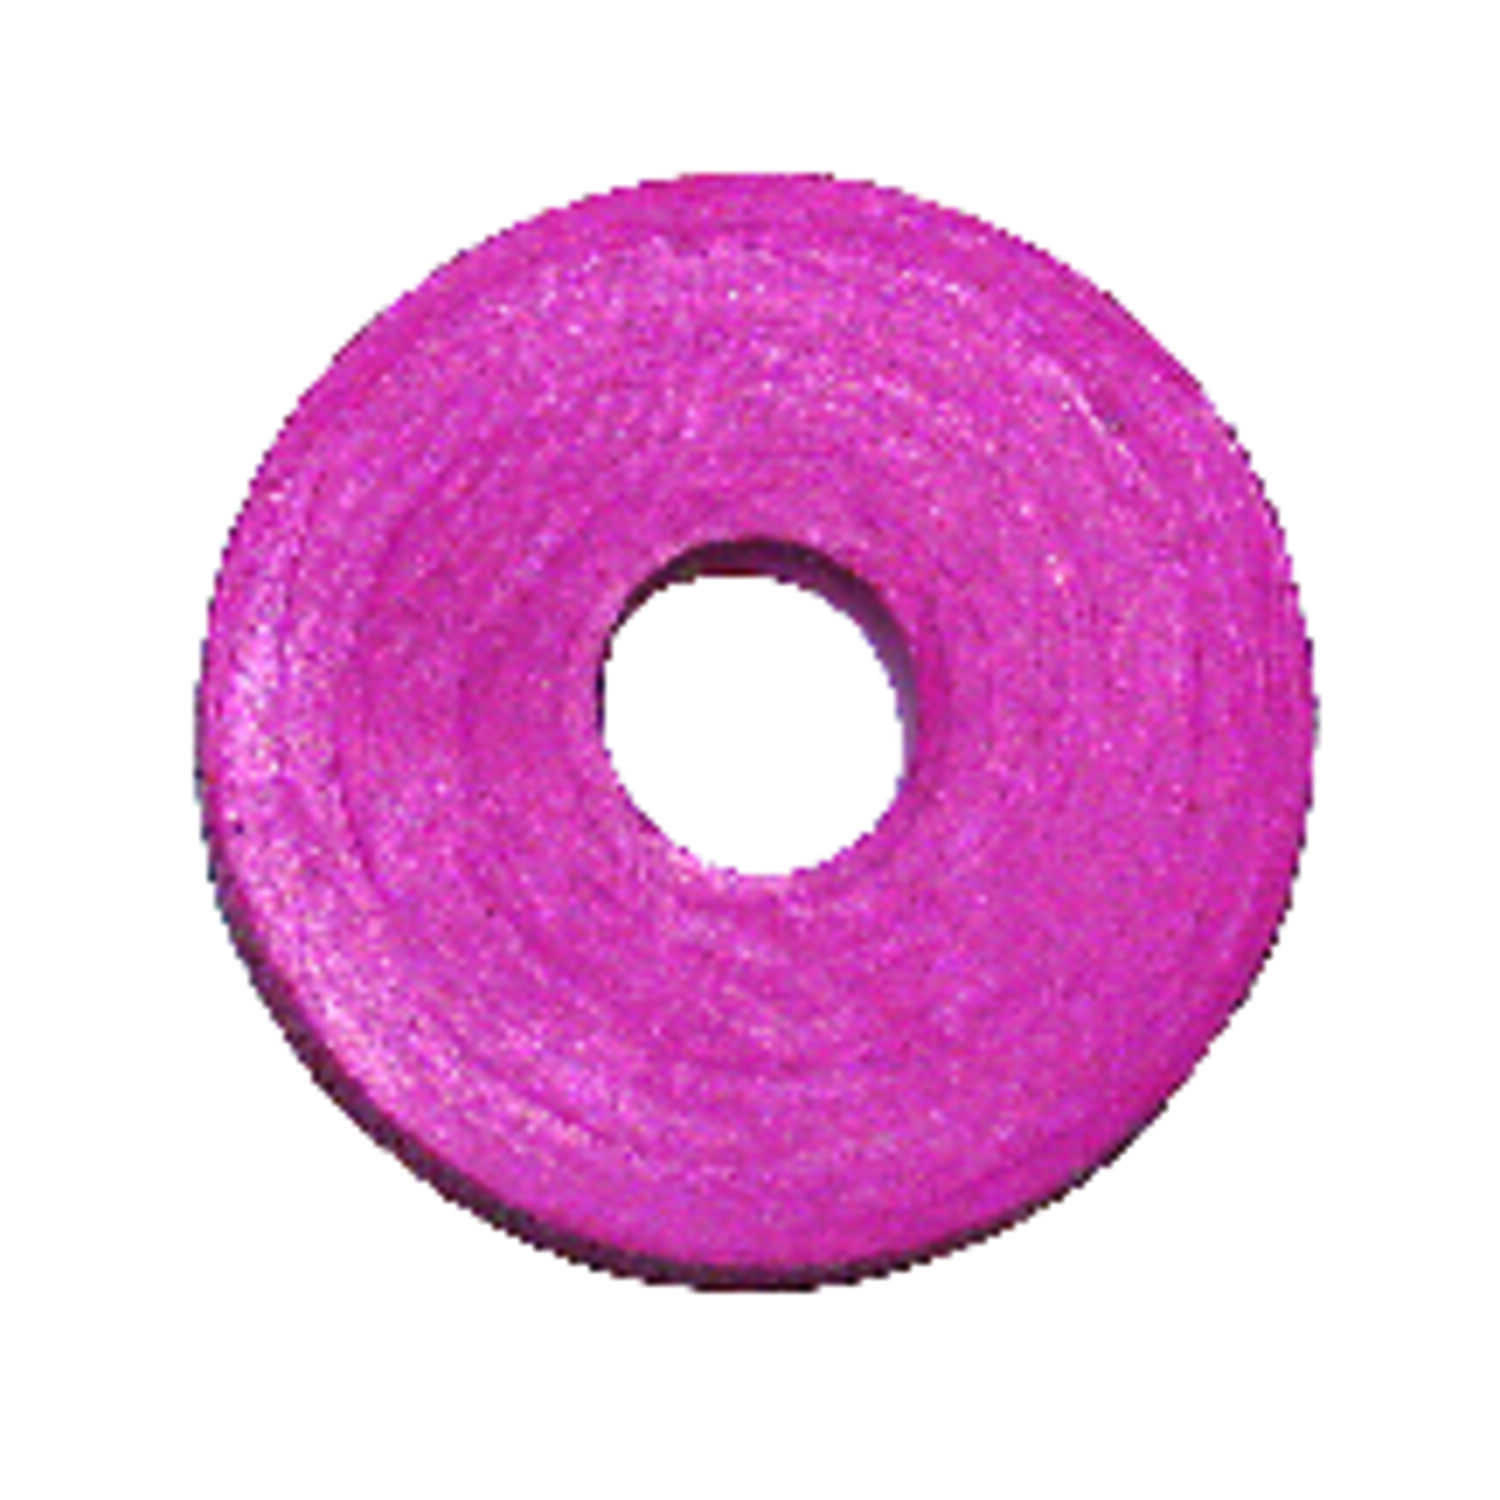 Ace  1/2 in. Dia. Rubber  Faucet Washer  6